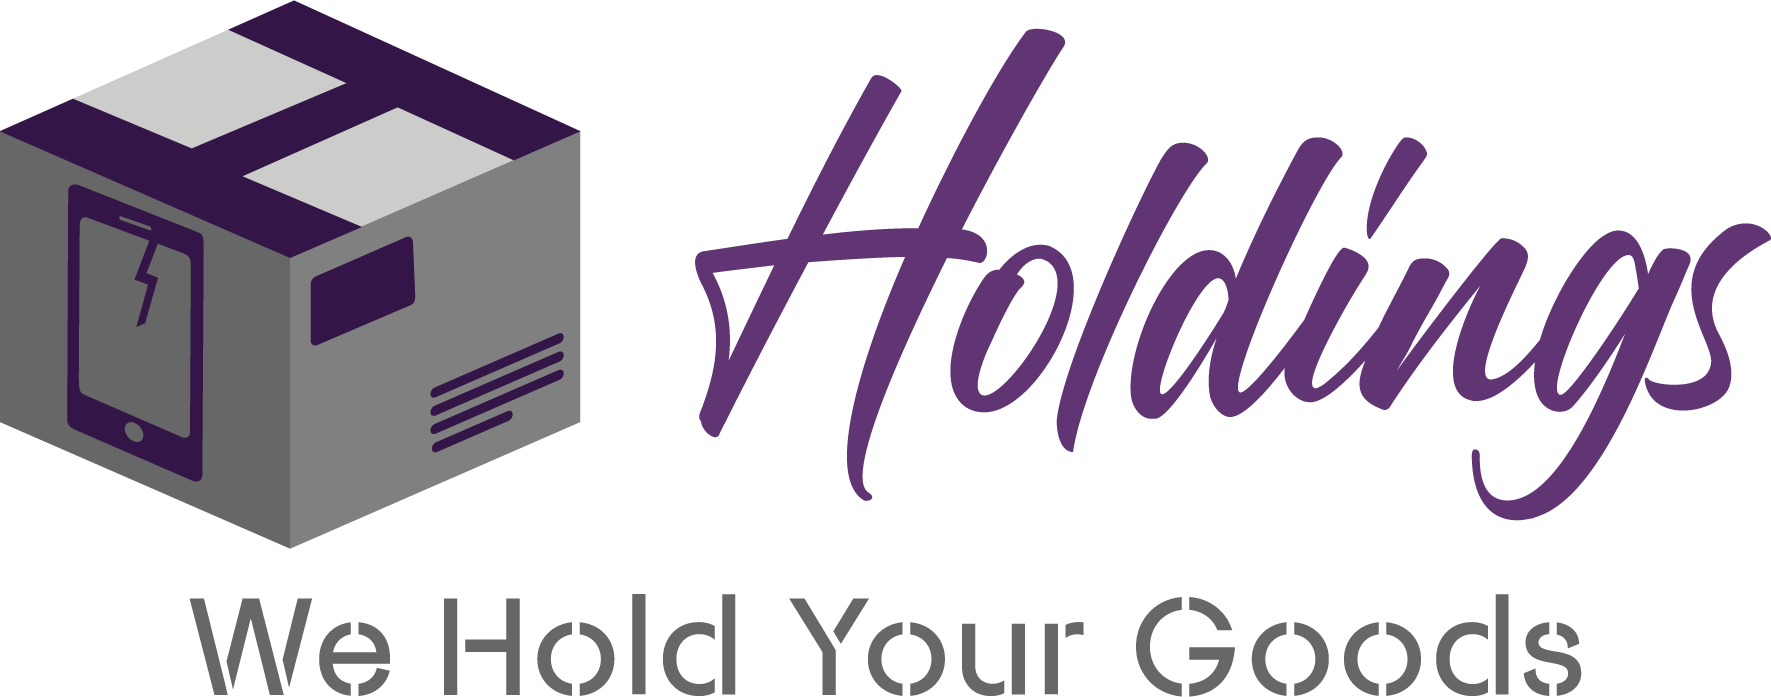 Holdings | We Hold Your Goods